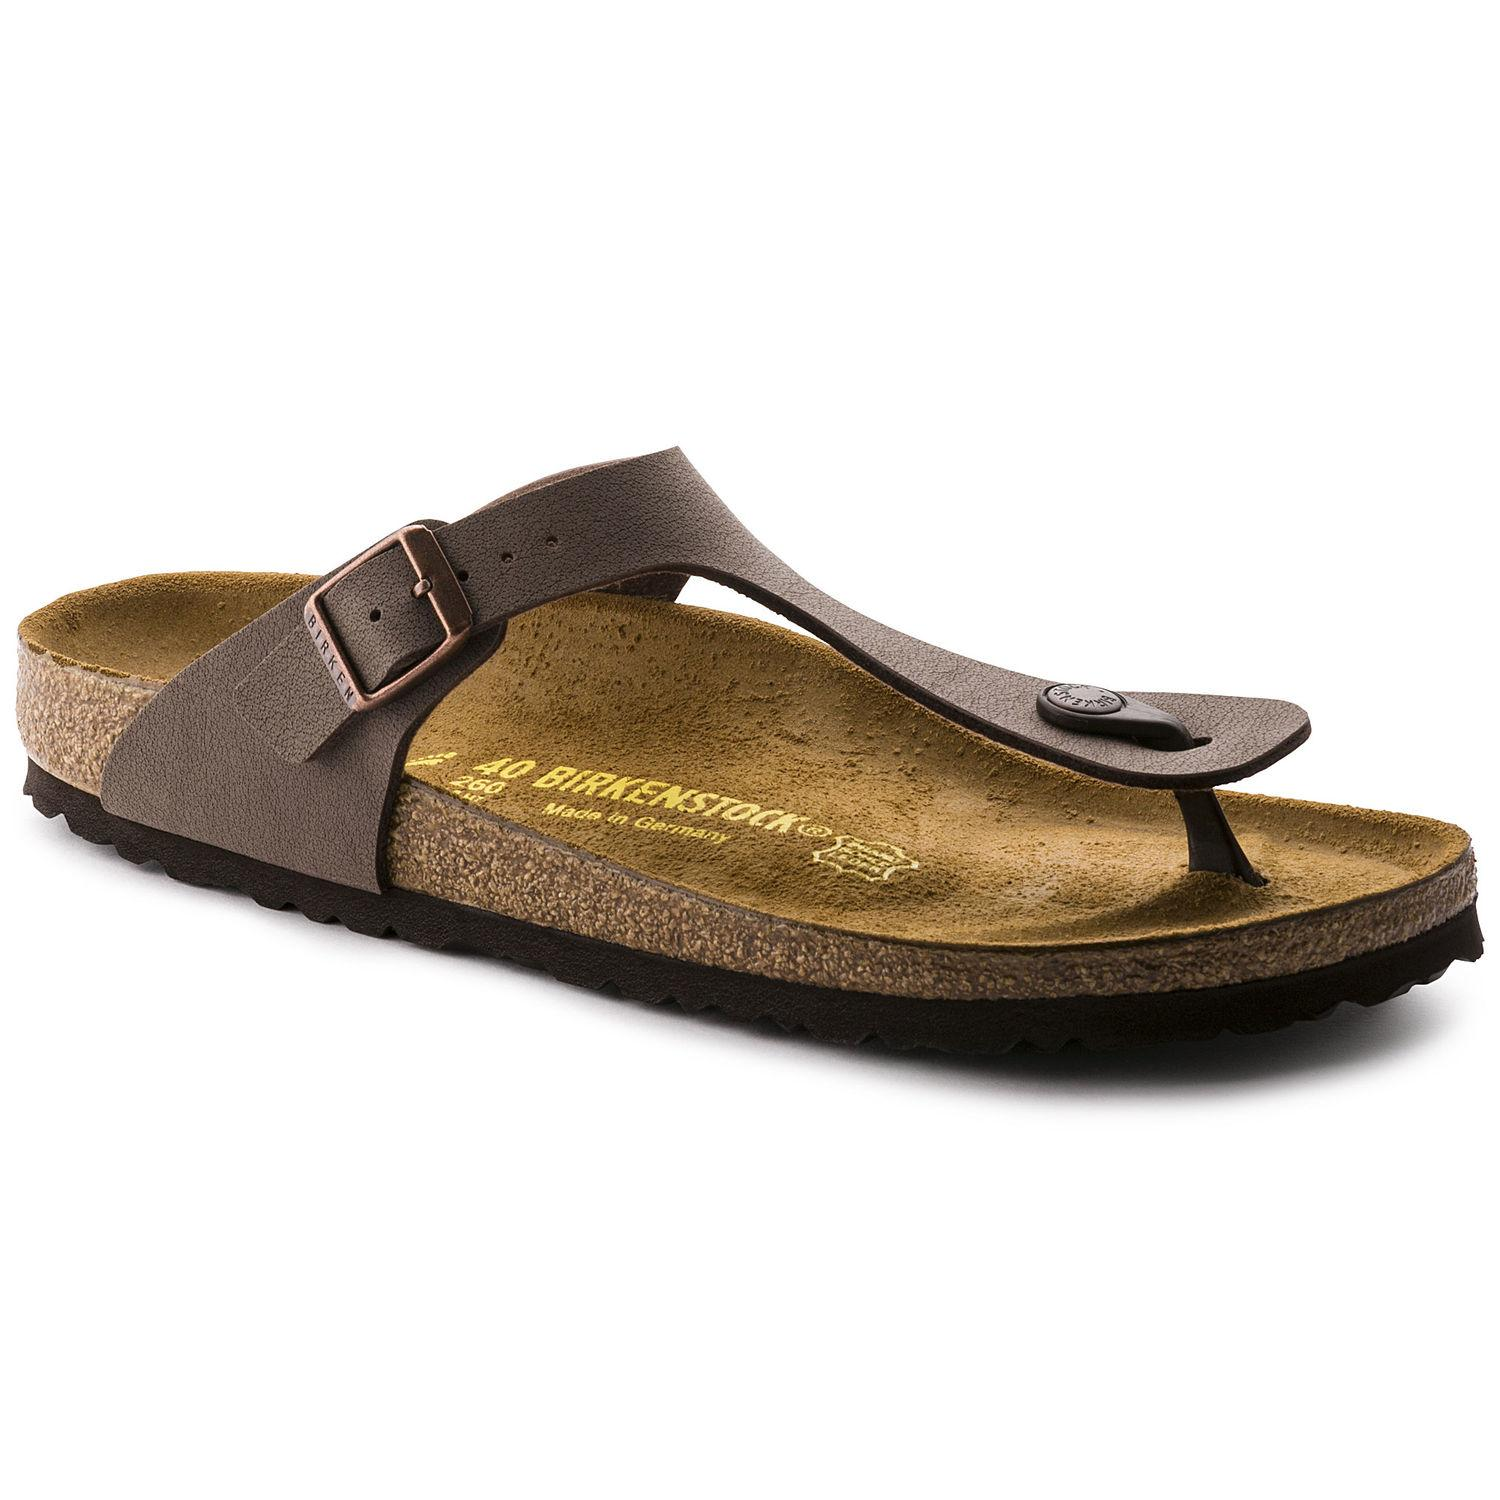 821682d6d Birkenstock Gizeh Birko-Flor Nubuck Soft Leather Sandals Mocca colour